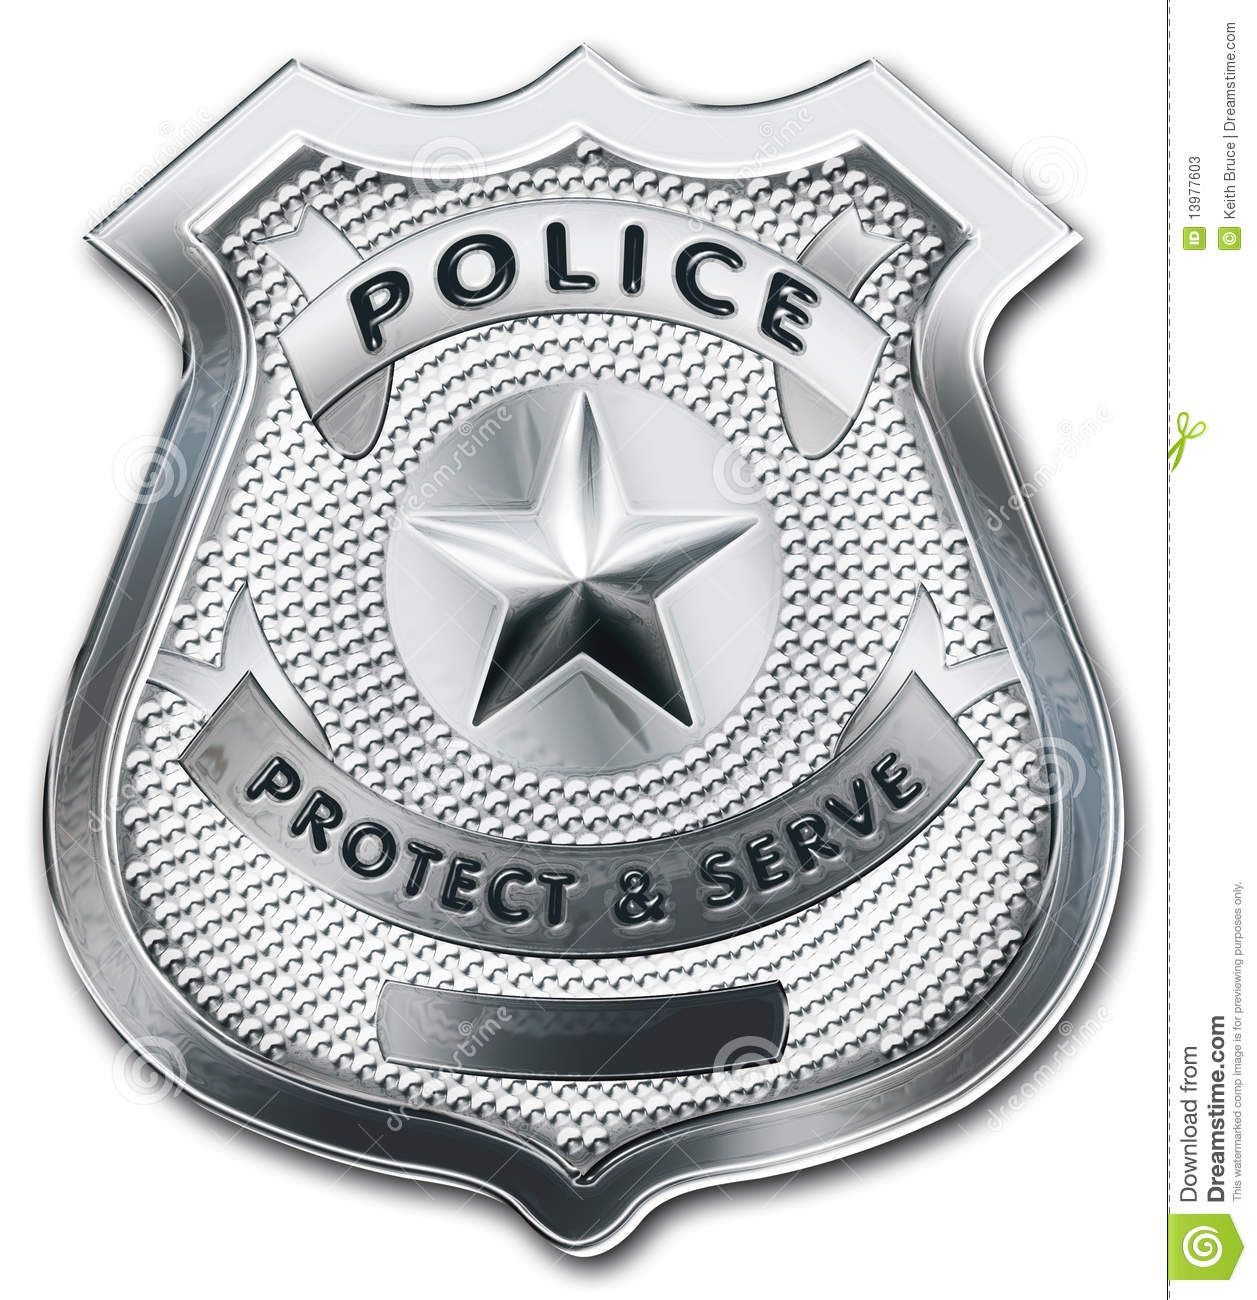 Vancouver Artist S Cartoon Of Florida School Shooting: Police Officer Badges Images & Pictures - Becuo